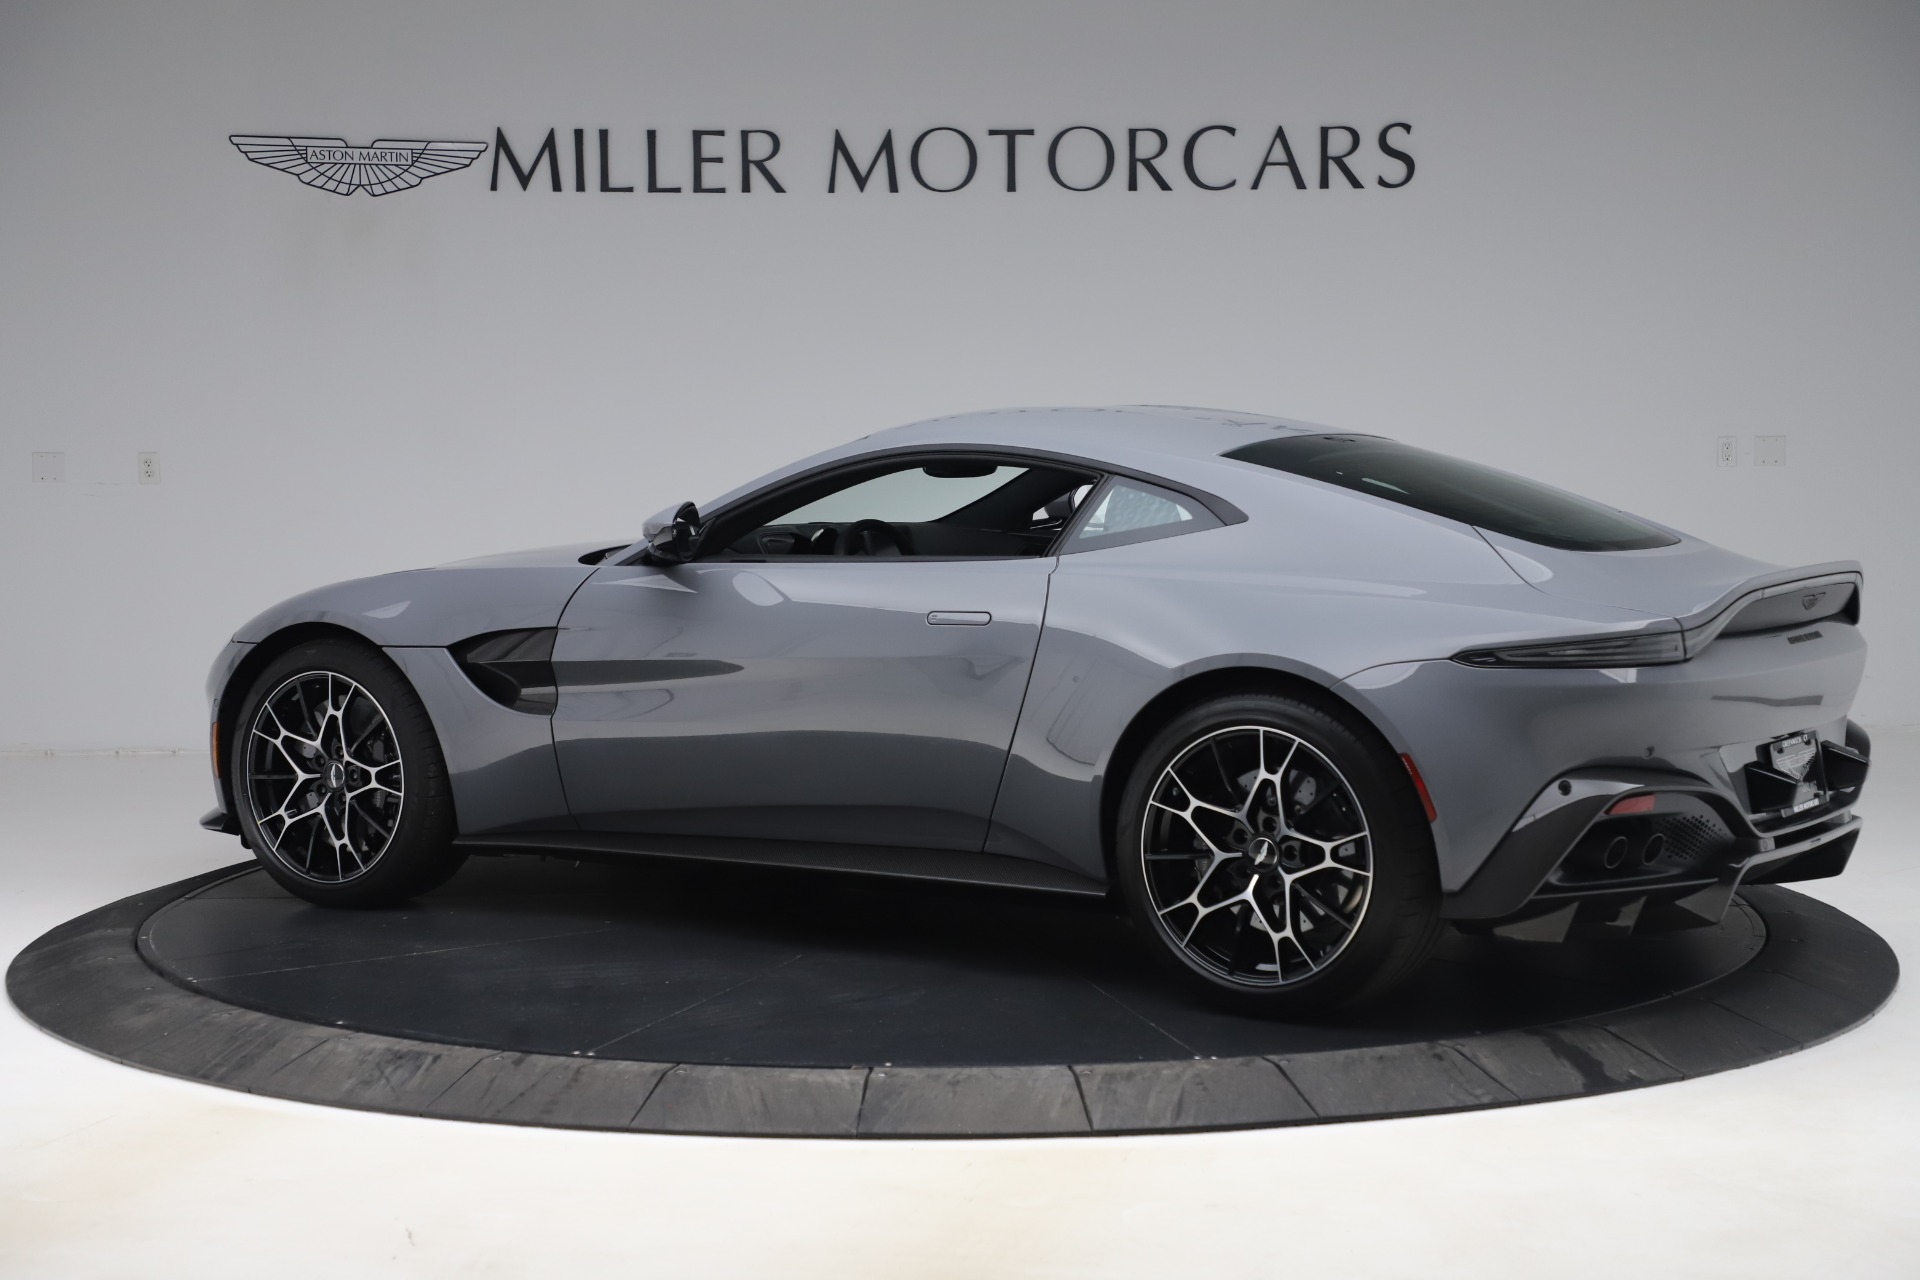 Pre Owned 2020 Aston Martin Vantage Amr Coupe For Sale Miller Motorcars Stock 7789